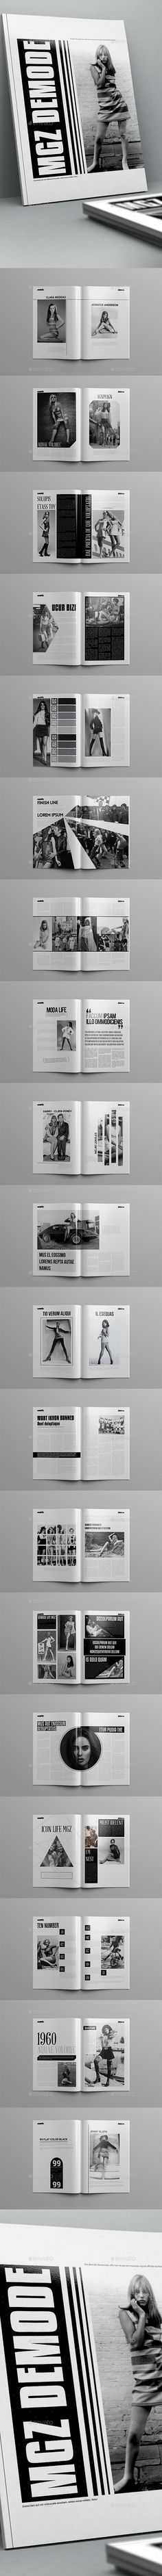 Demode Magazine Template 40 Pages InDesign INDD #design #journal Download: http://graphicriver.net/item/demode-magazine-template-40-pages/13202347?ref=ksioks